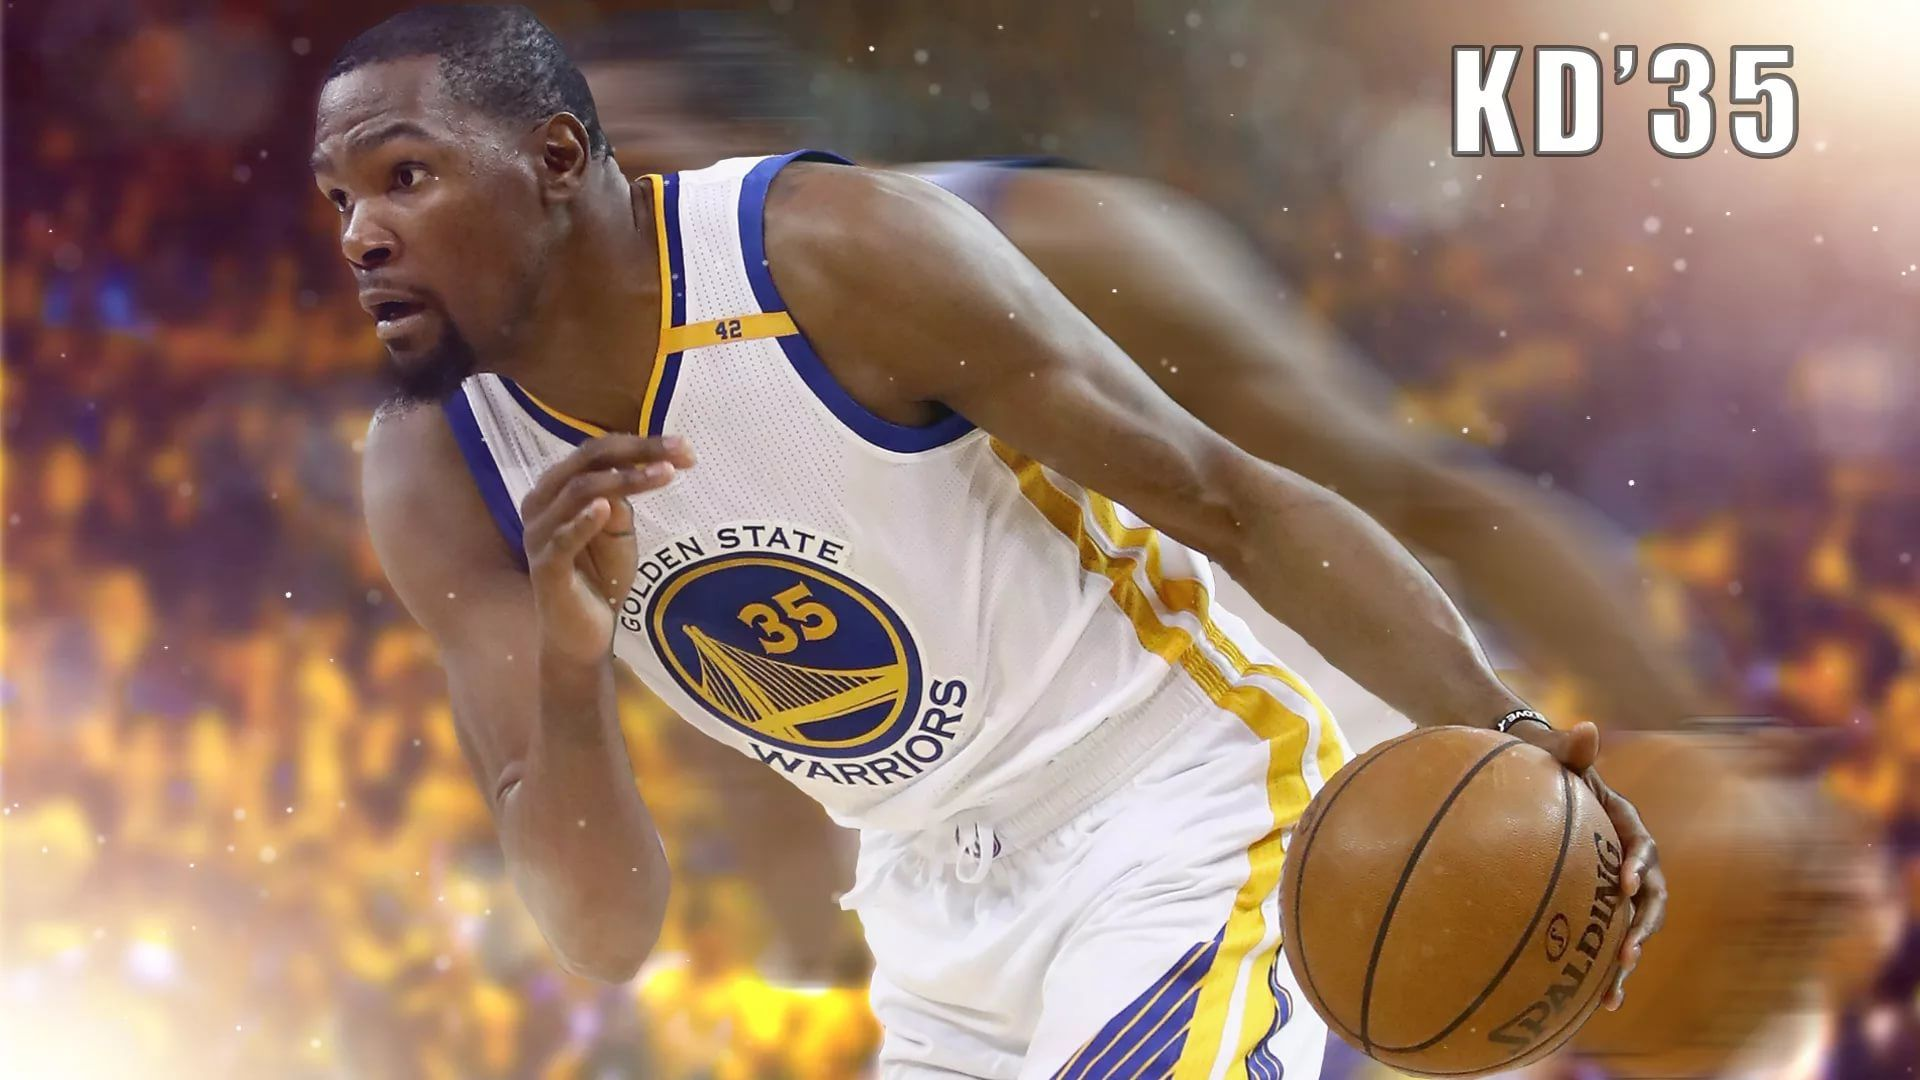 Kevin Durant download free wallpaper image search